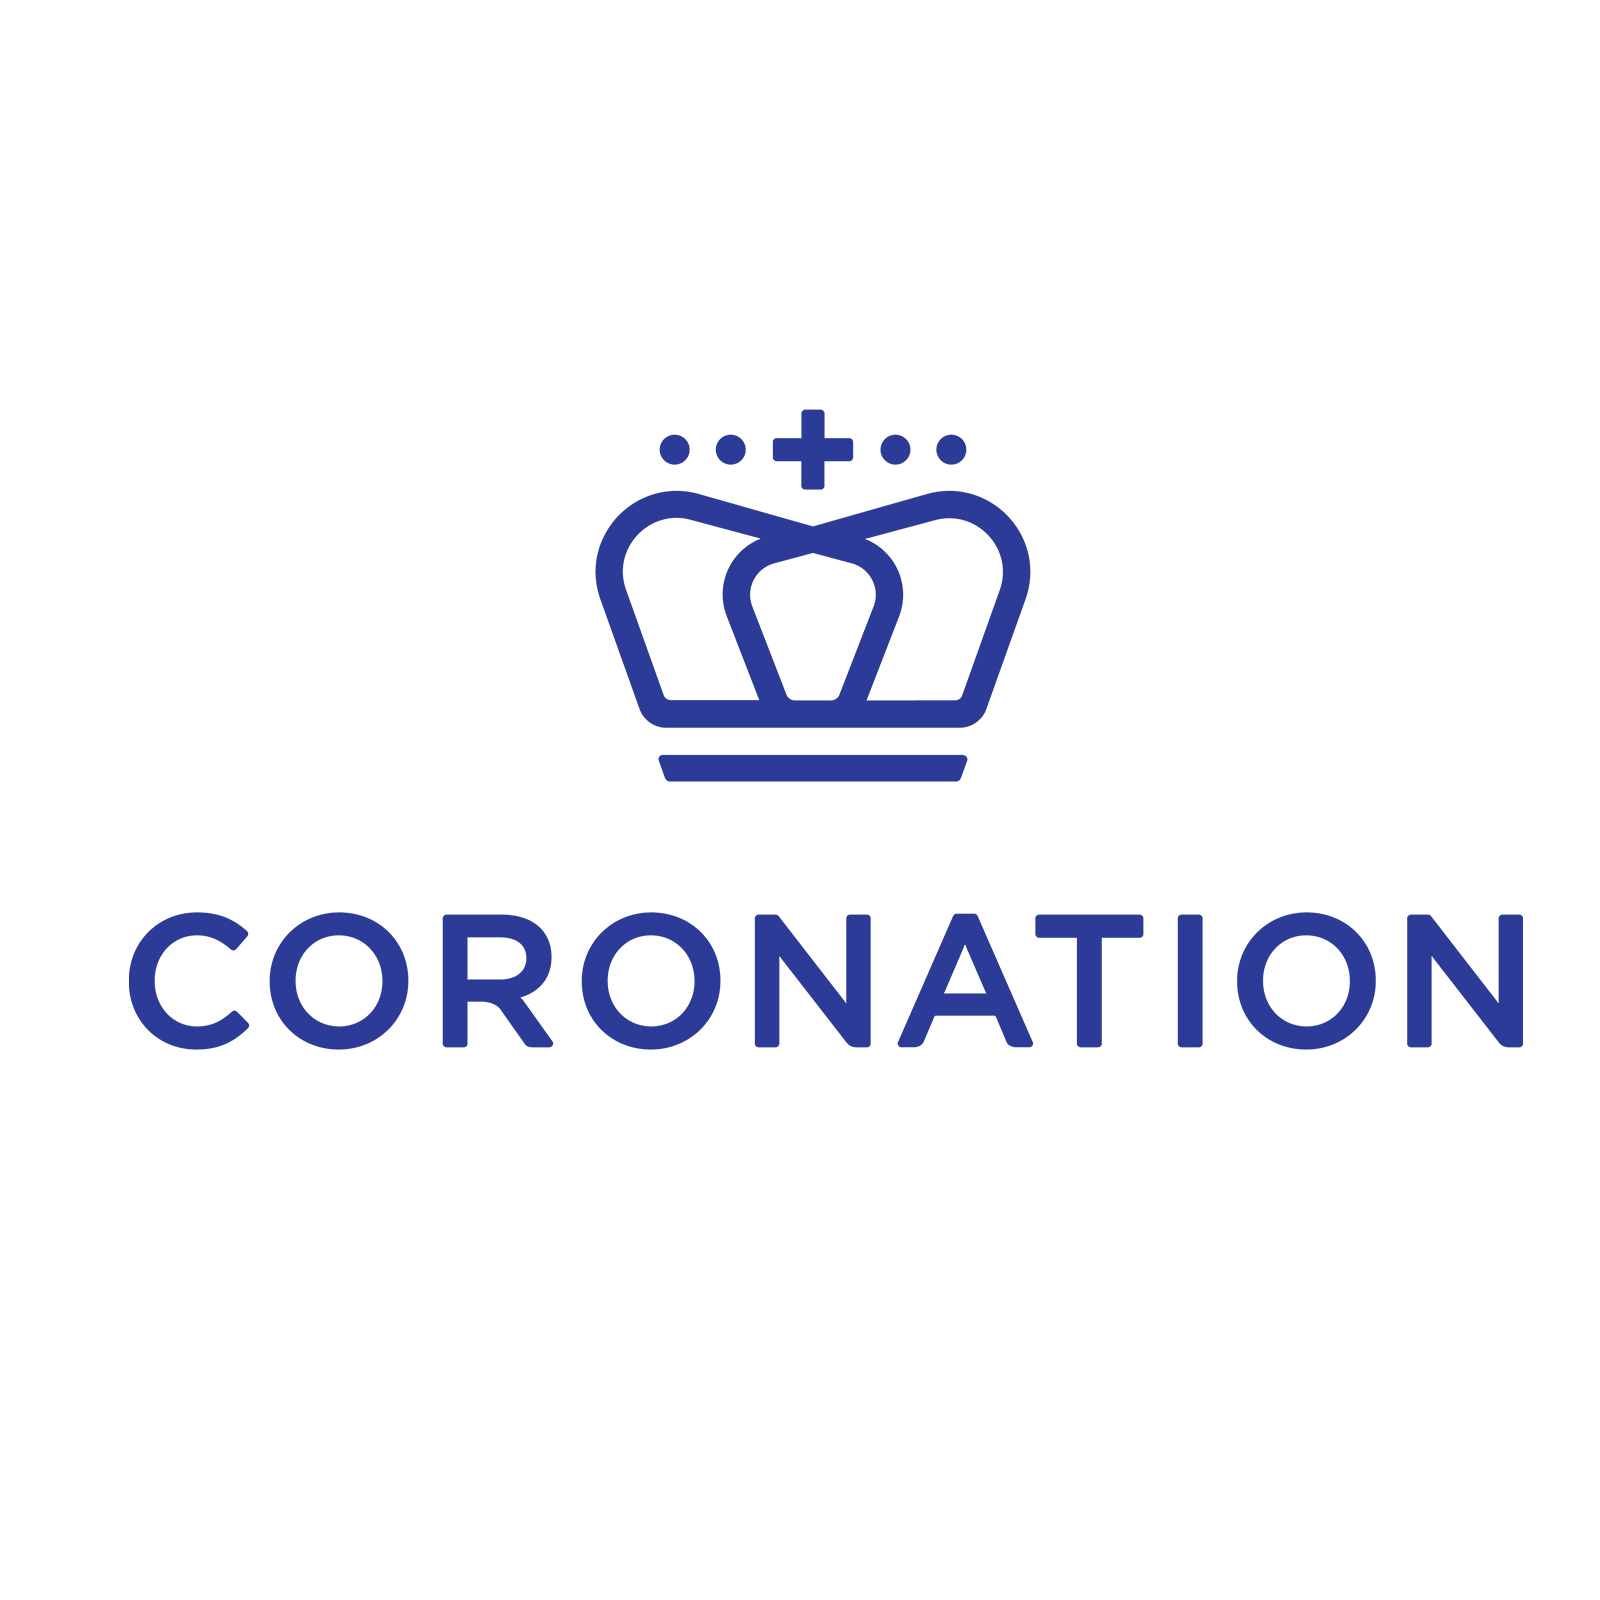 The coronation fund managers logo with a symbol of a blue crown with blue font for the partnership of the Ladles of Love Mandela Day 2021 campaign